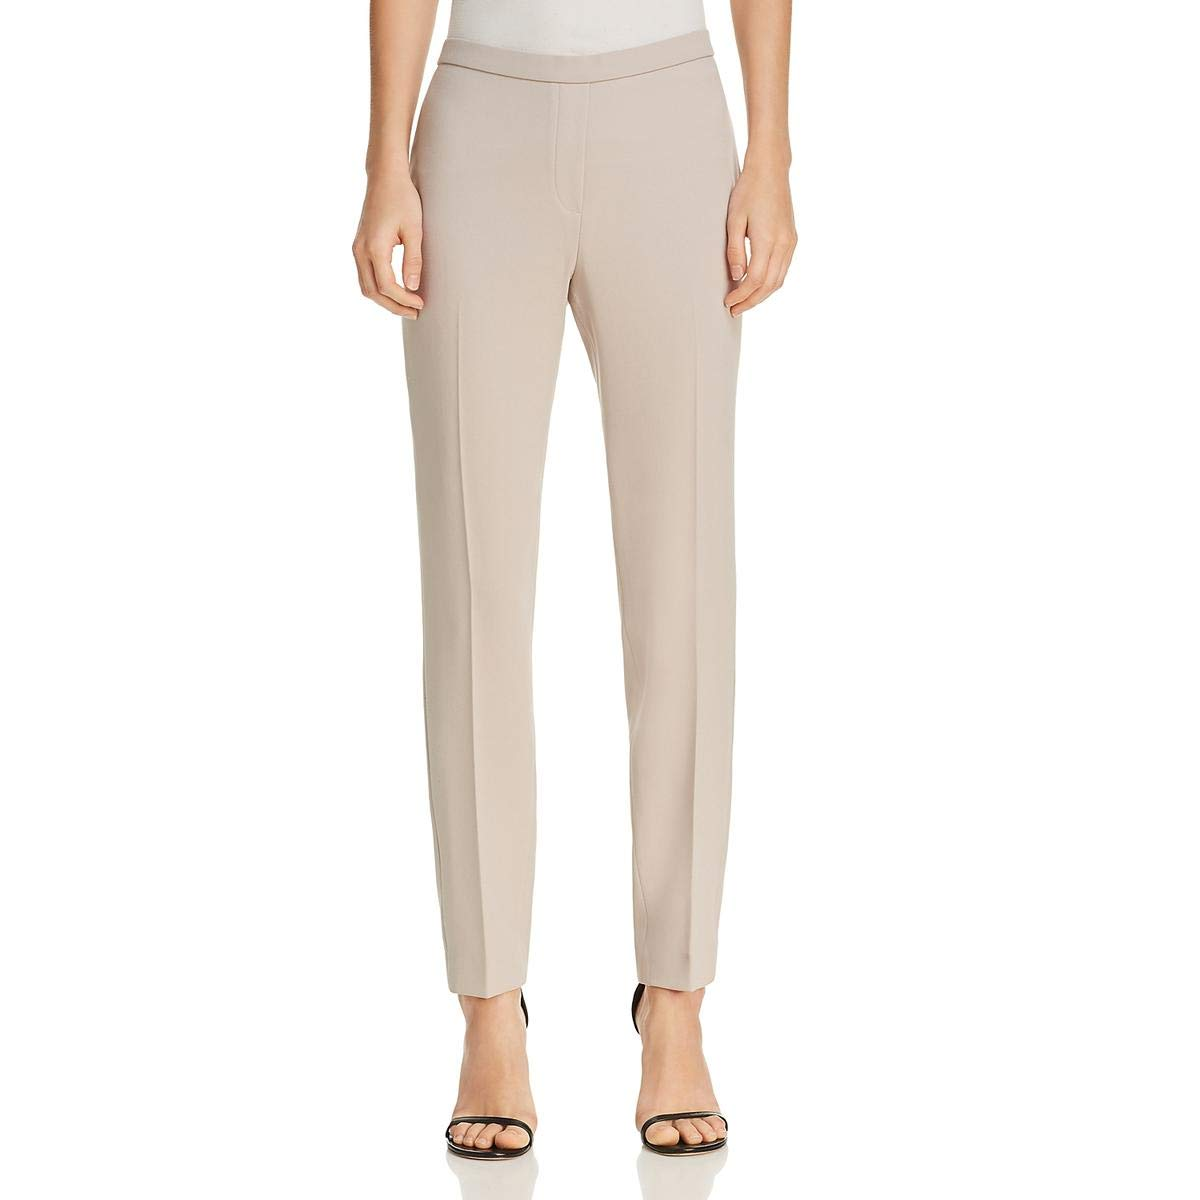 Bamboo Elie Tahari Womens Marcia Office Wear to Work Straight Leg Pants